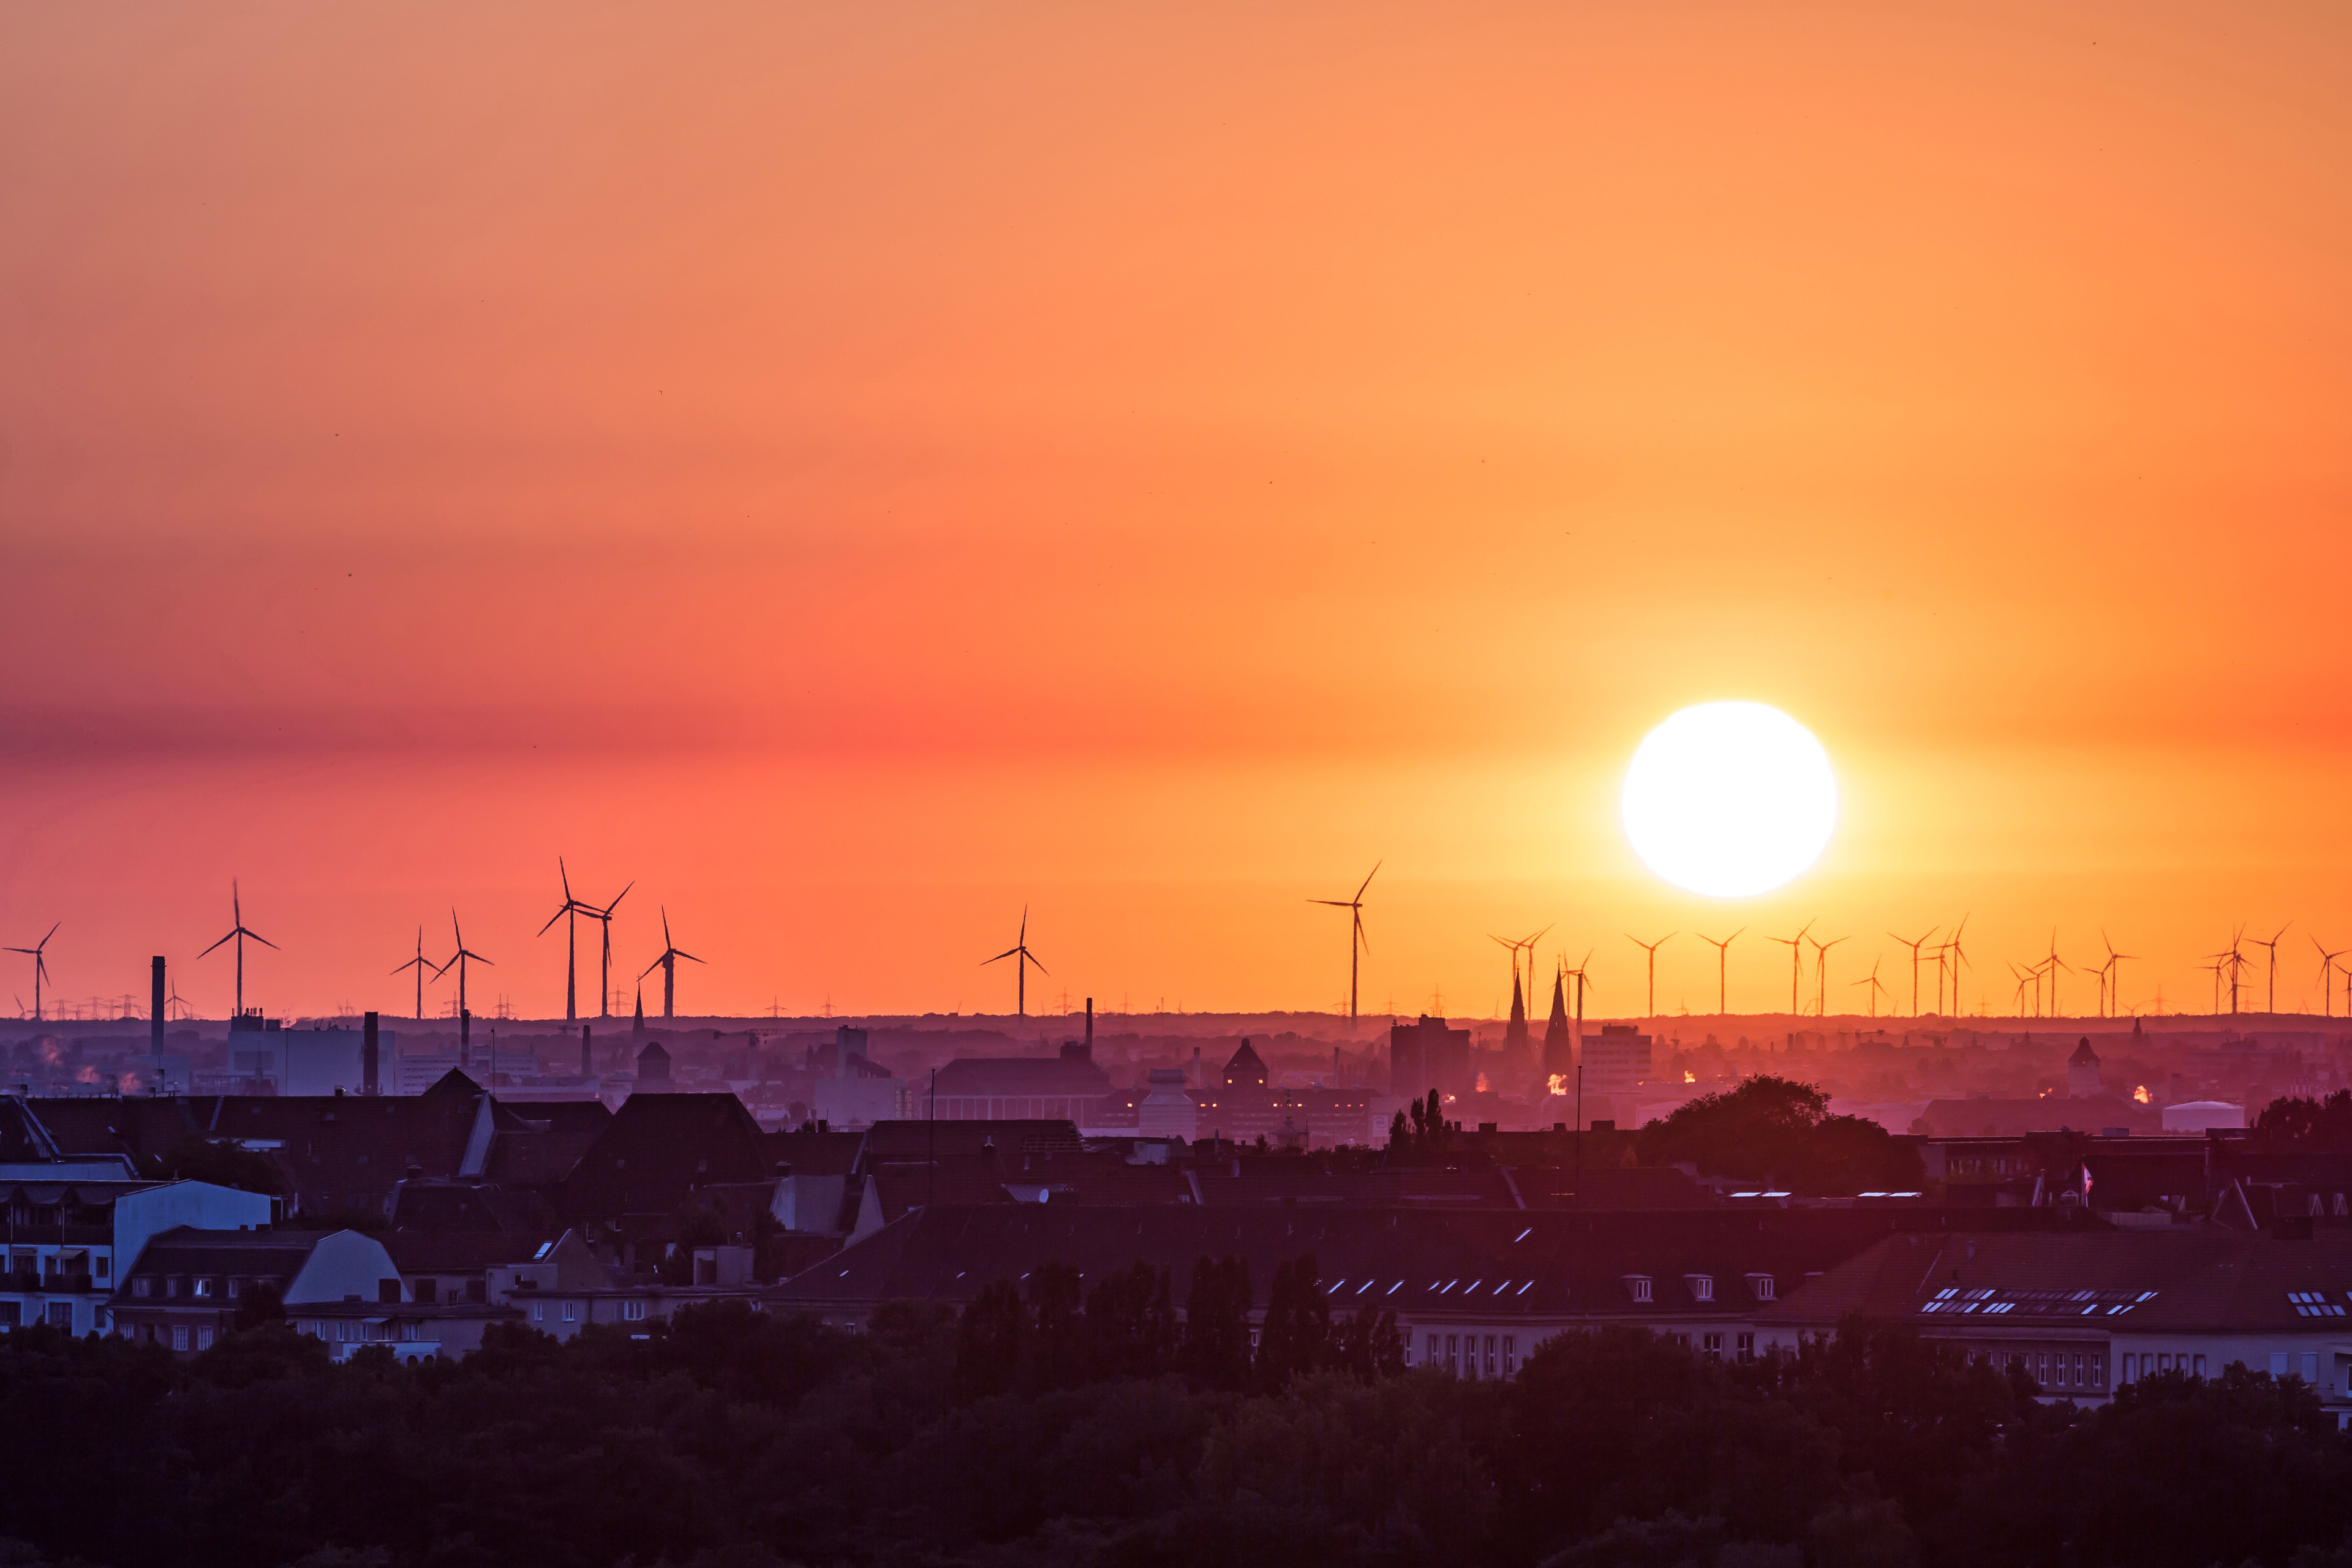 Wind turbines near Berlin/ Germany with colorful sunset